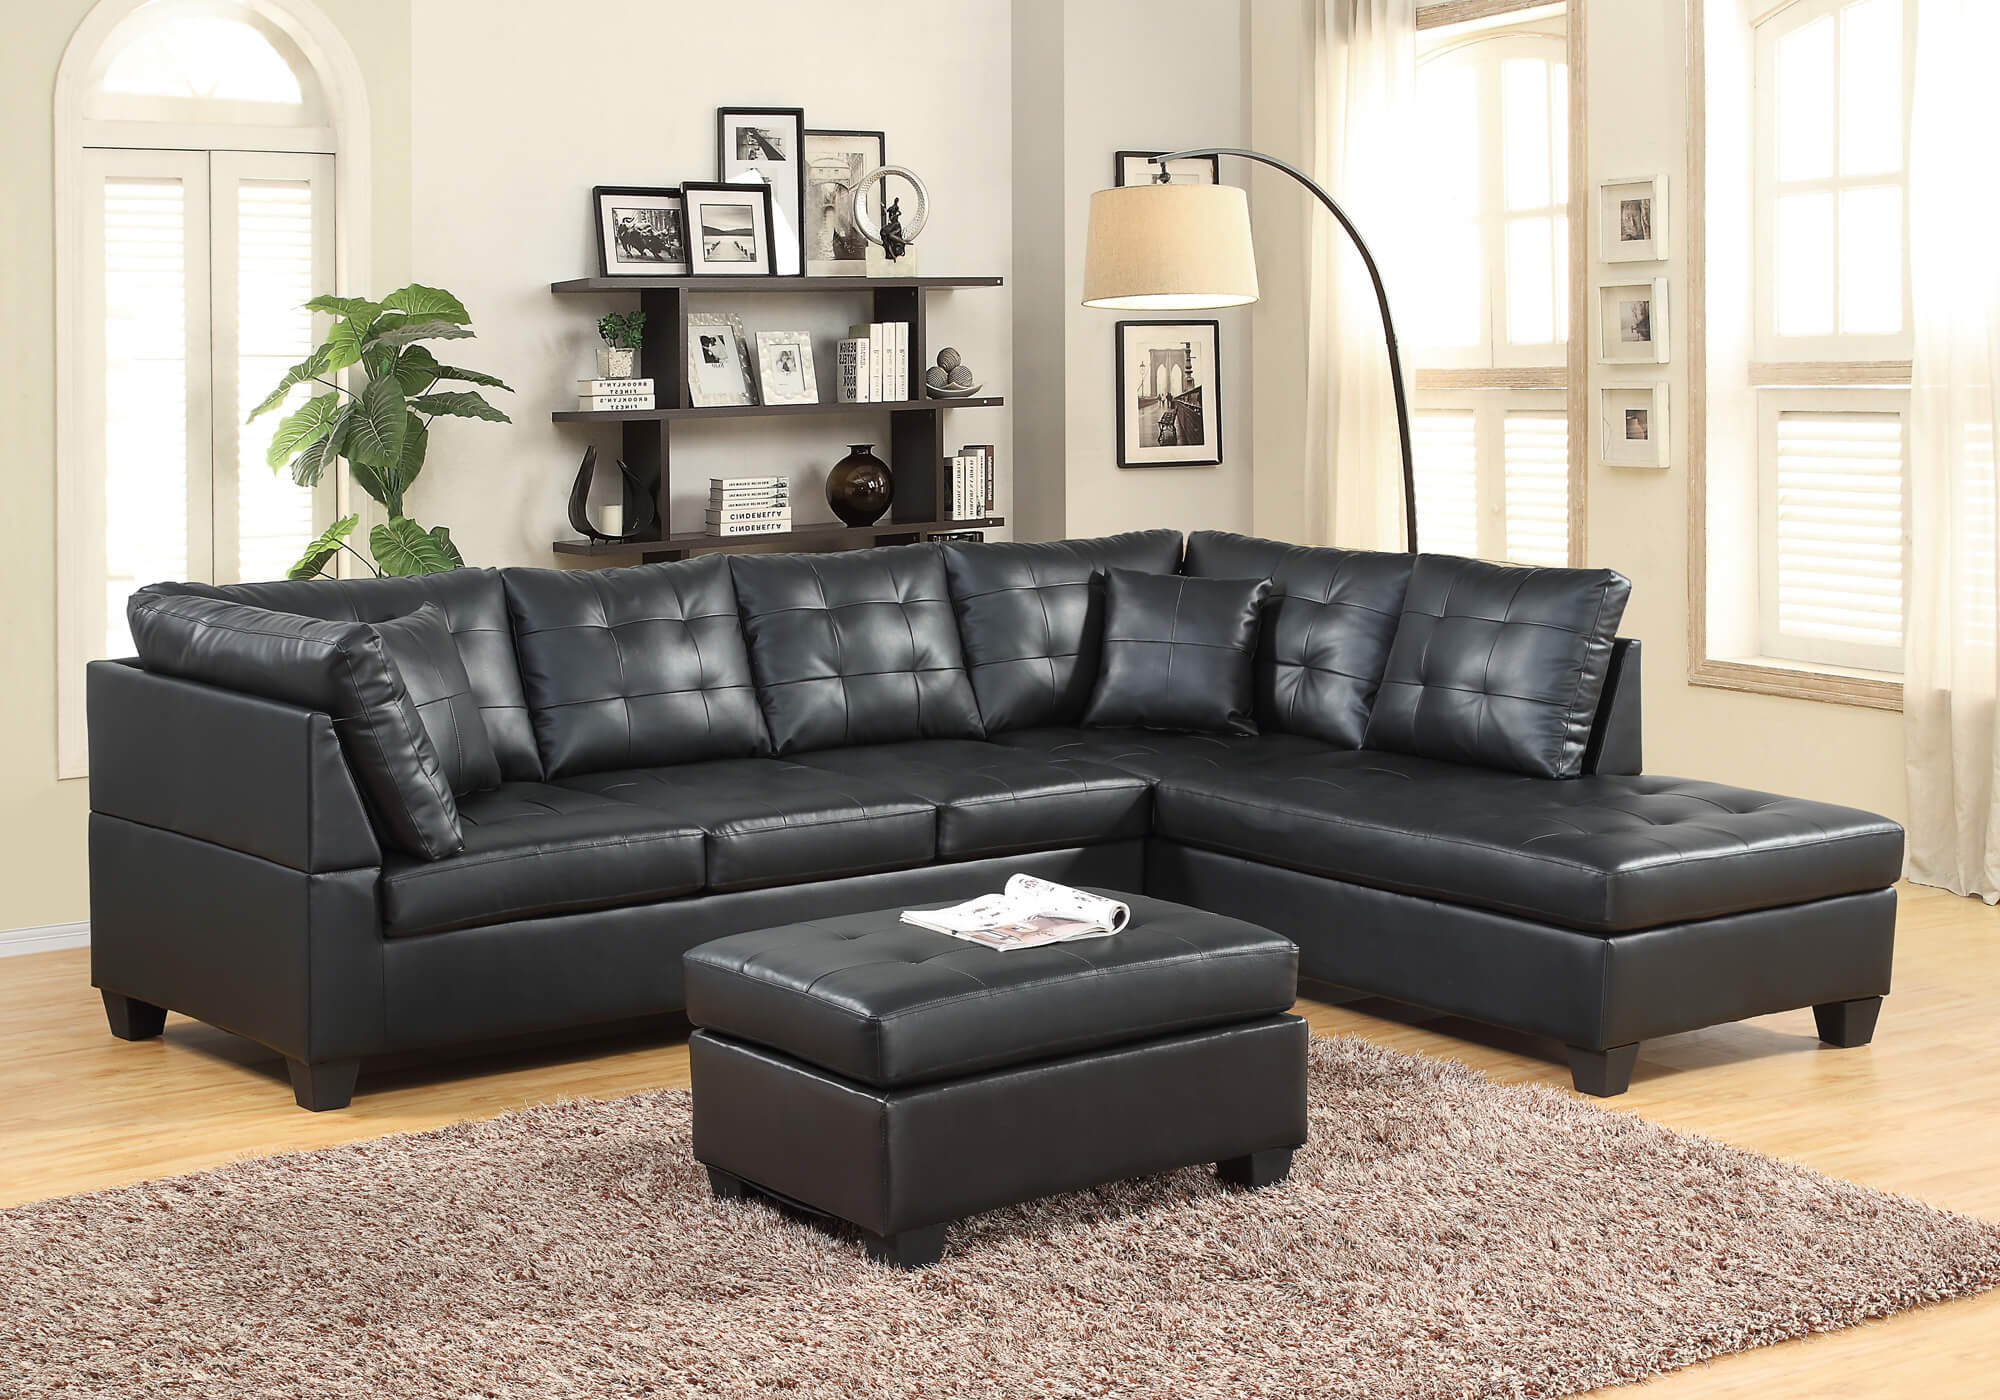 Black leather like sectiona sectional sofa sets for Family room furniture